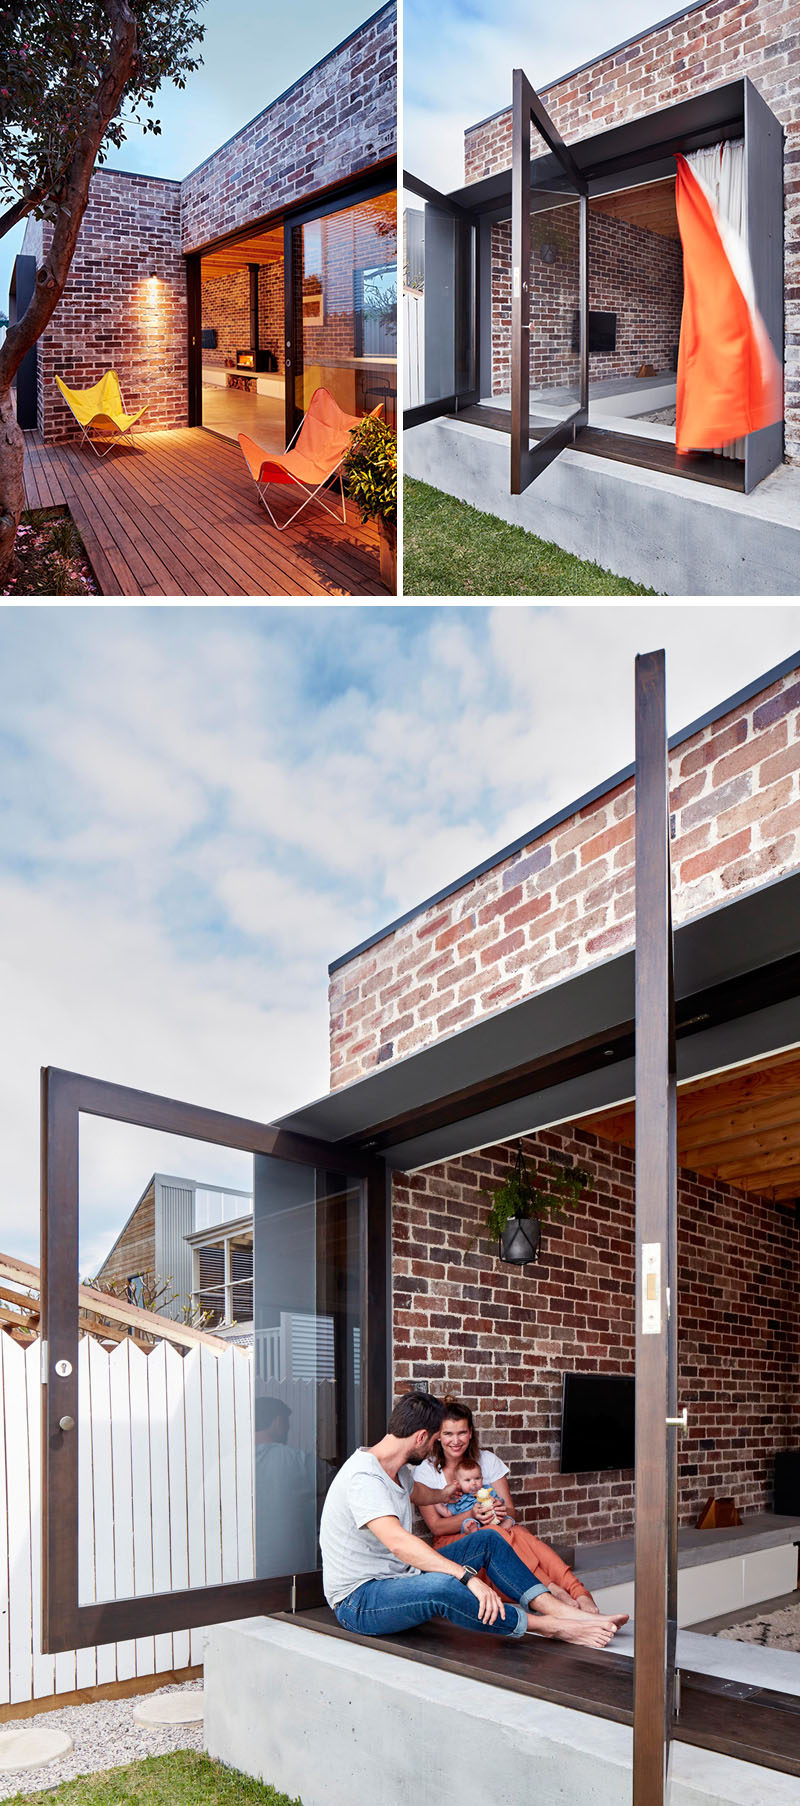 14 Modern Houses Made Of Brick // This small family home is covered with bricks that contrast the modern features of the house, like the large pivoting windows.